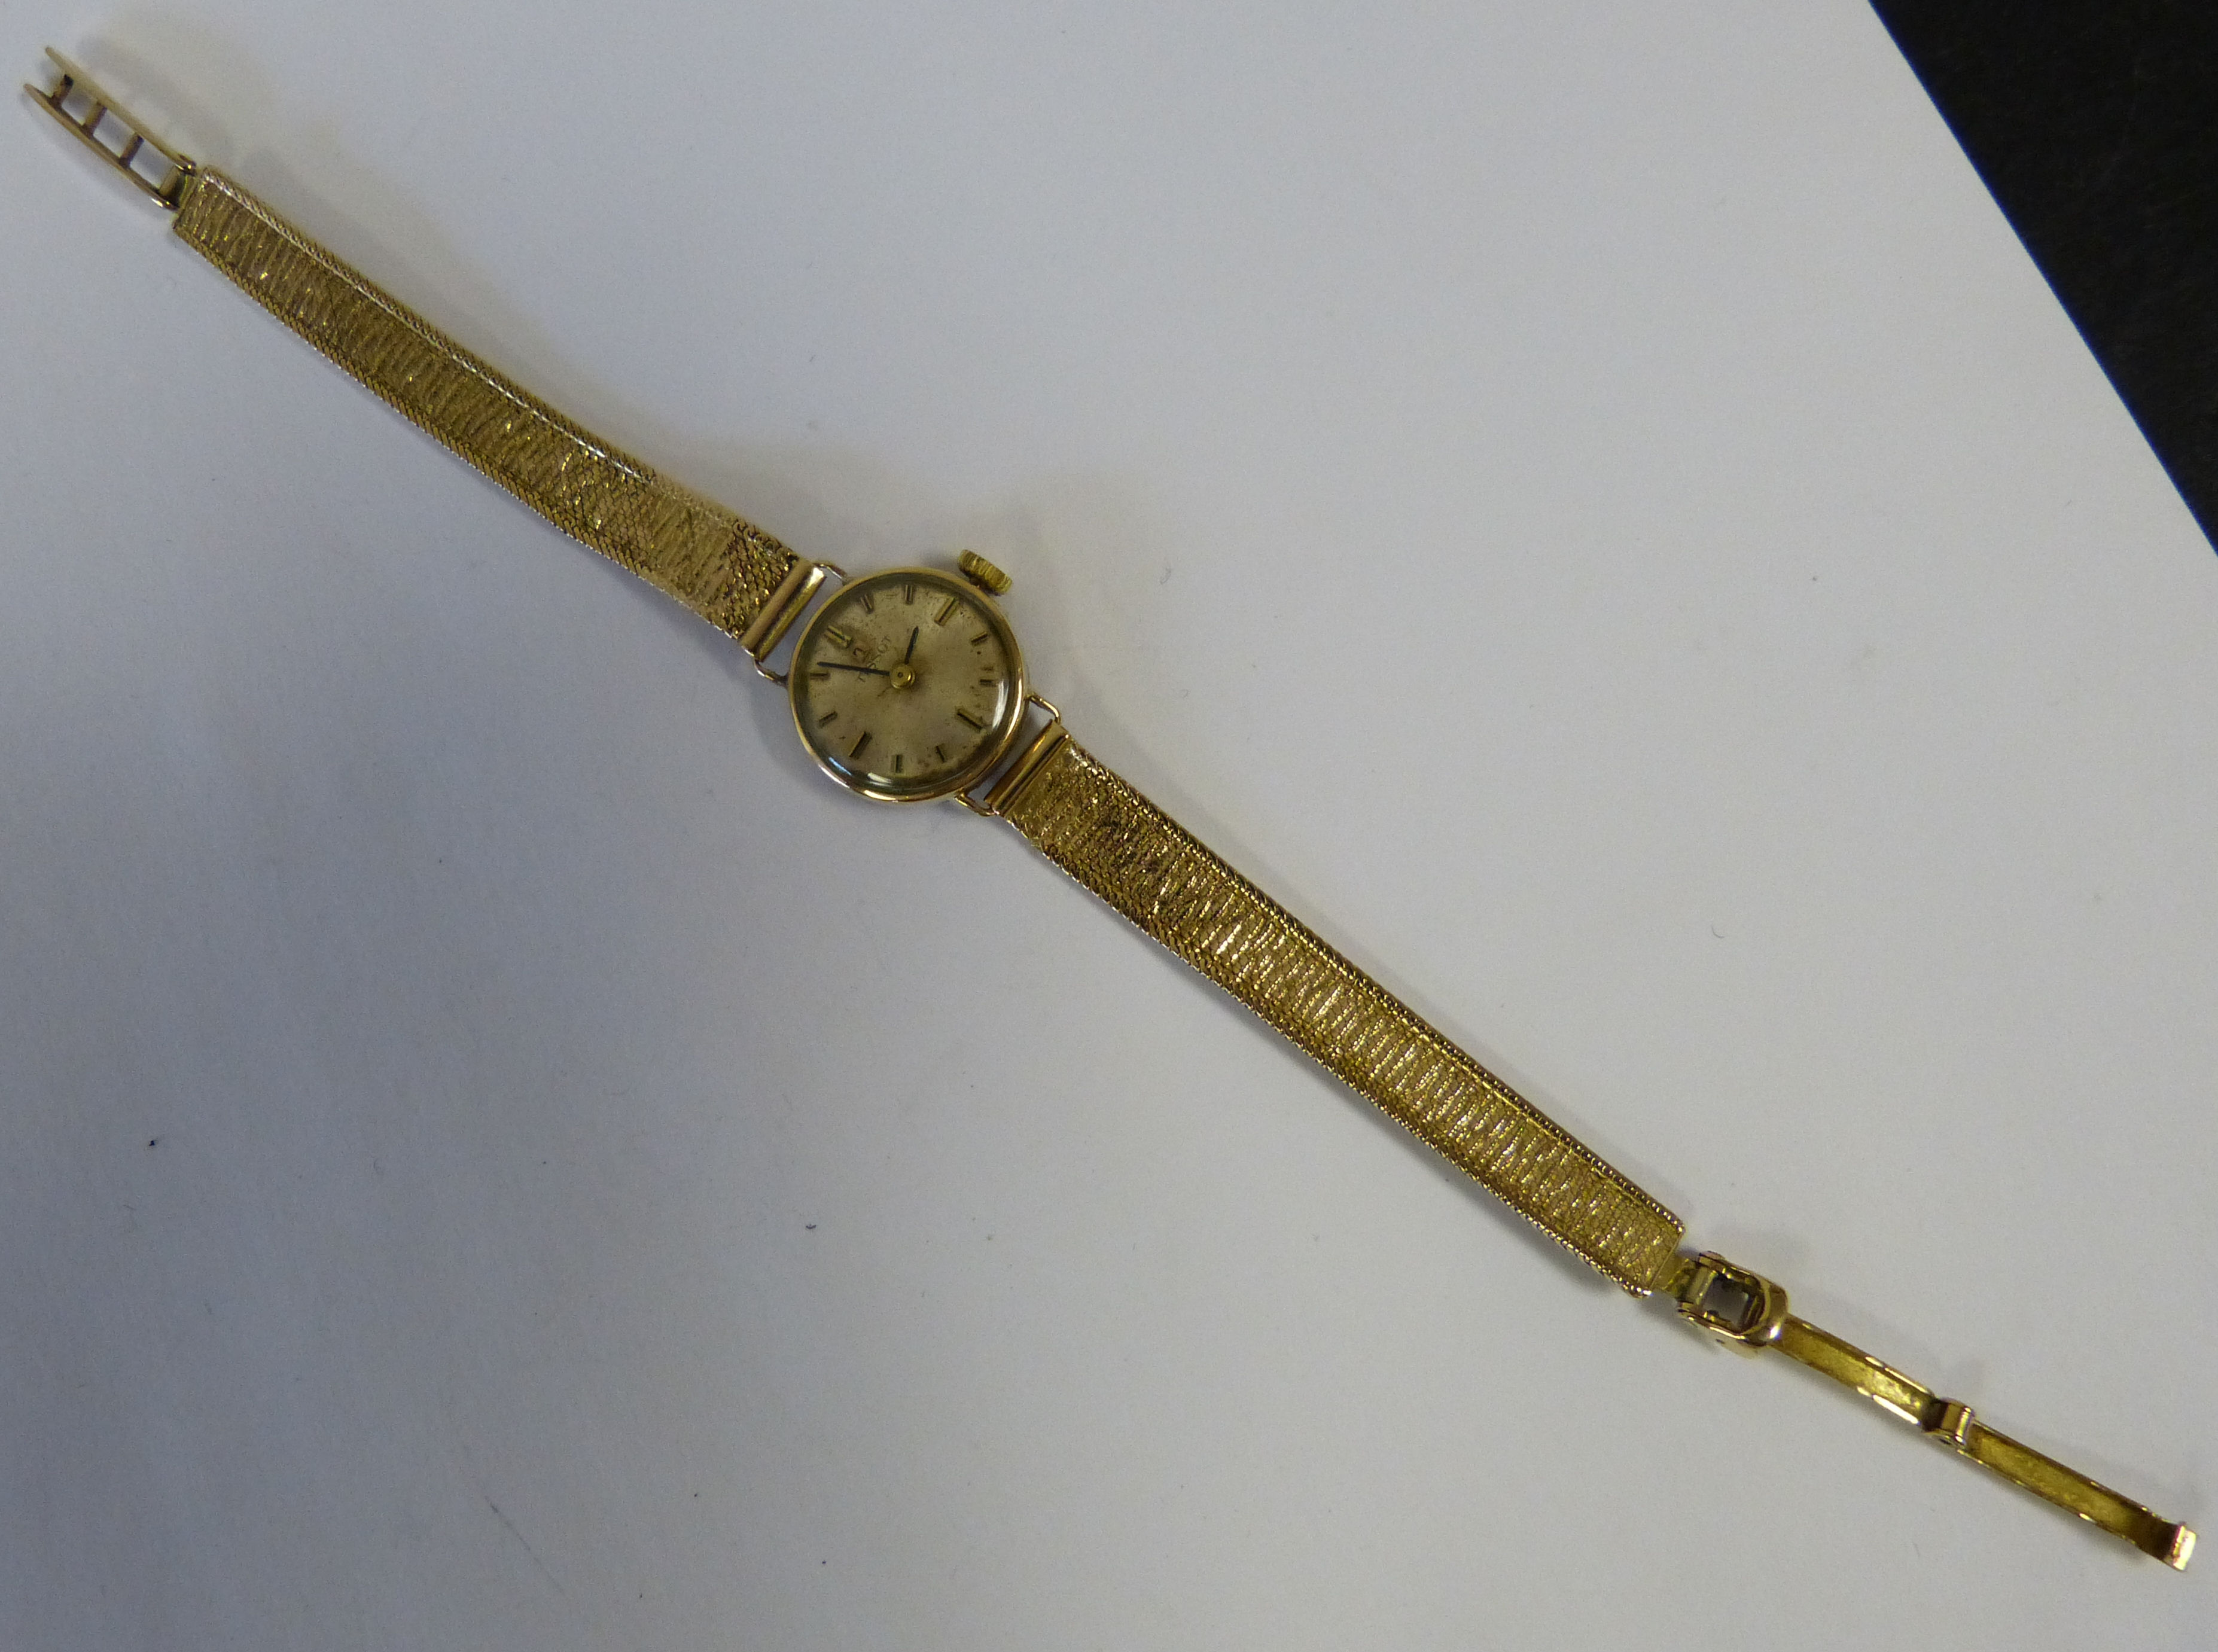 A 9ct Gold Tissot Ladies Circular Wristwatch having matching strap bracelet, weighable gold 12.2grms